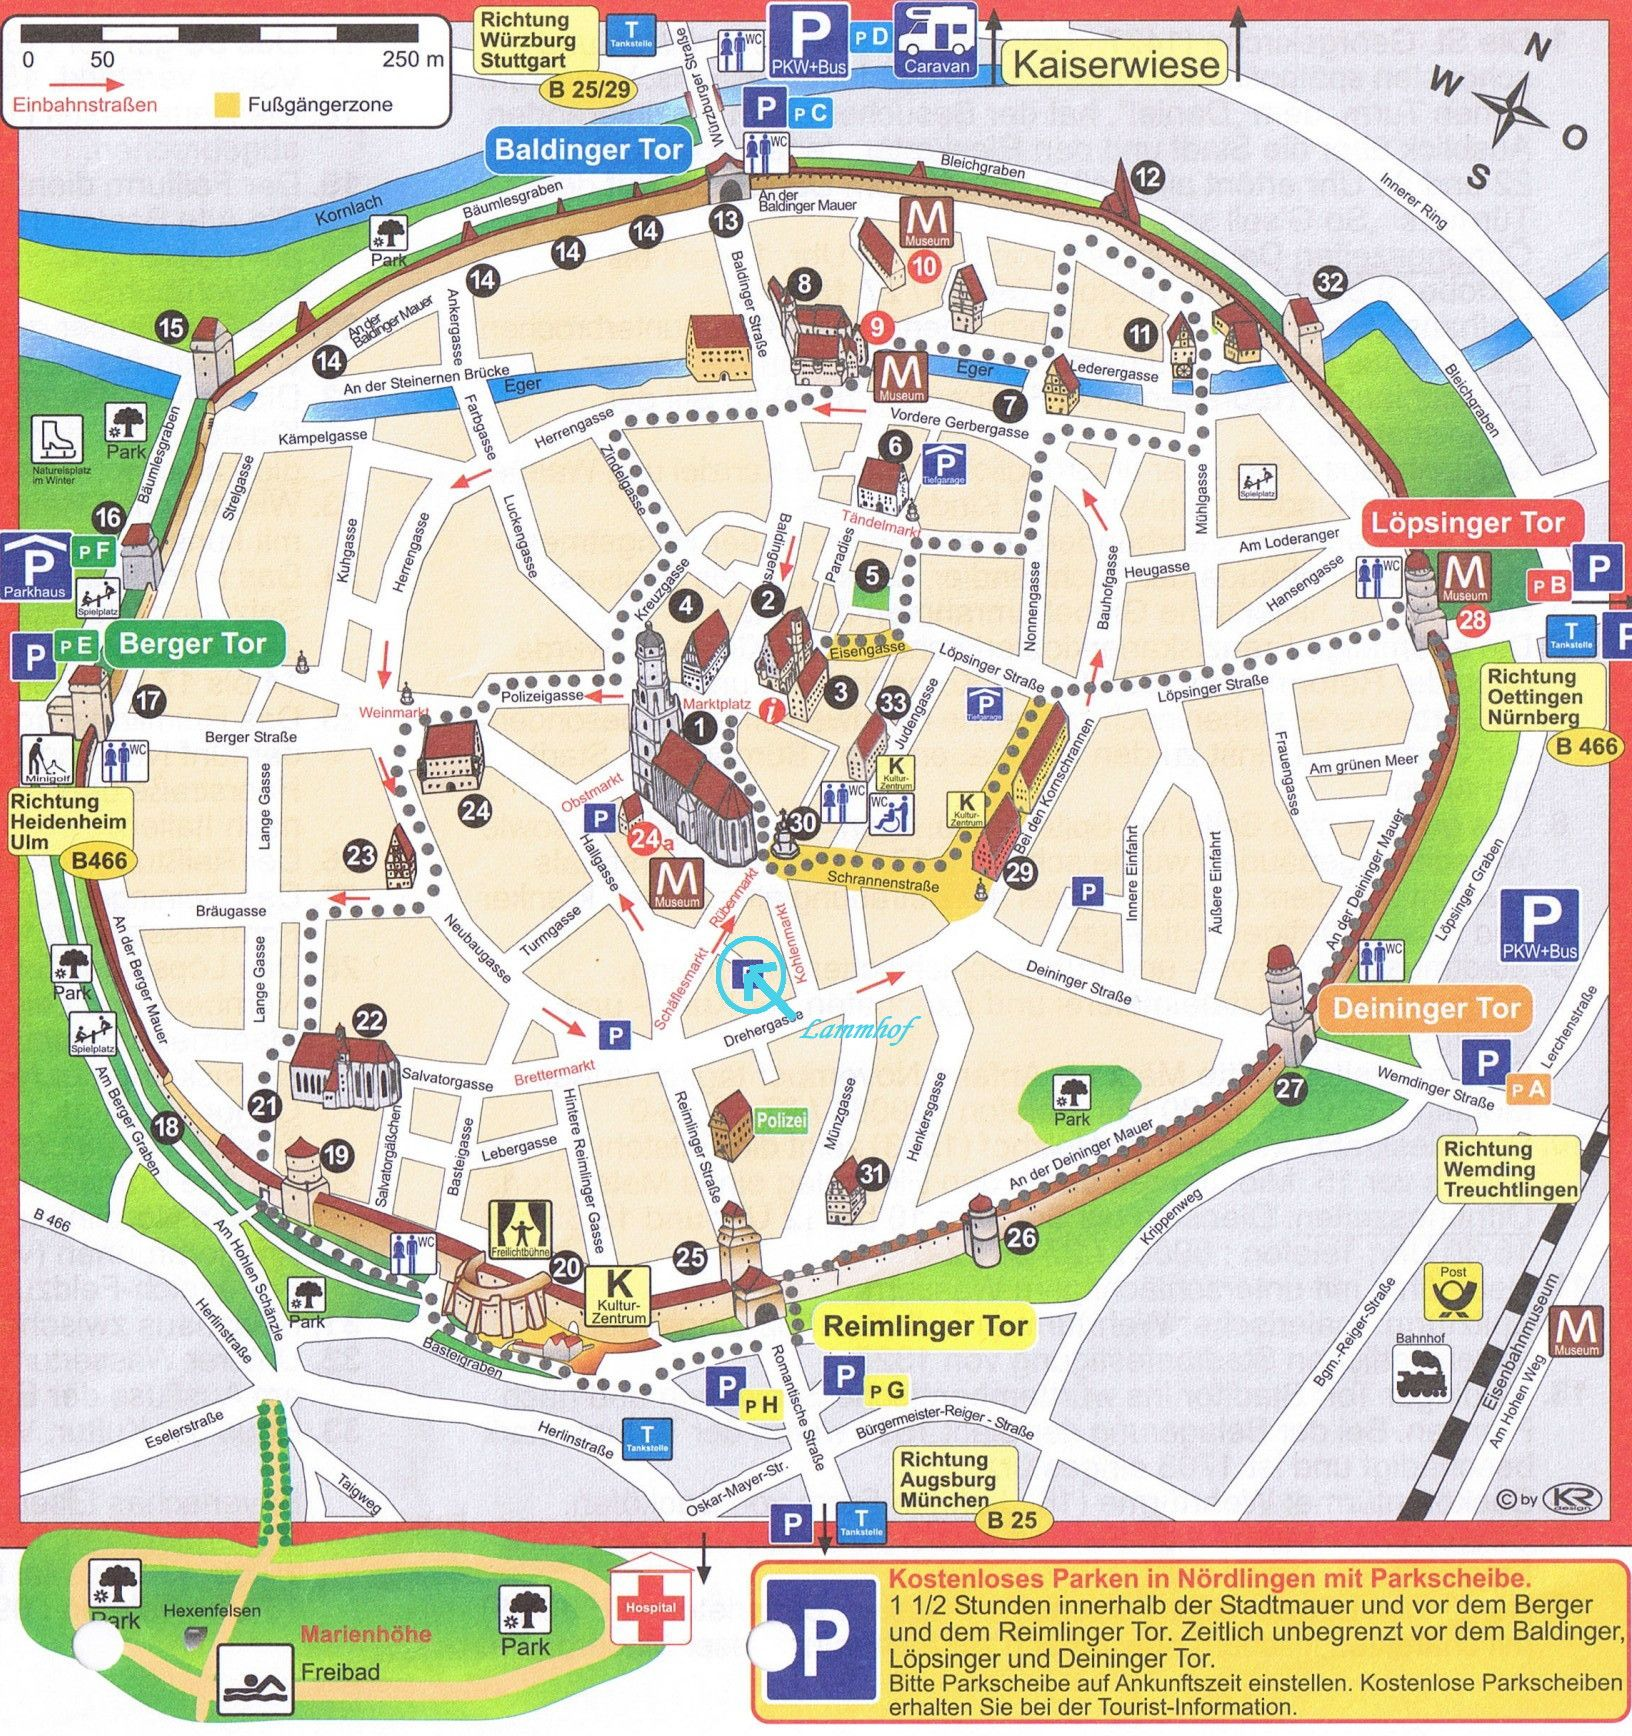 tourist map of munich Google Search Travel – Munich Tourist Attractions Map